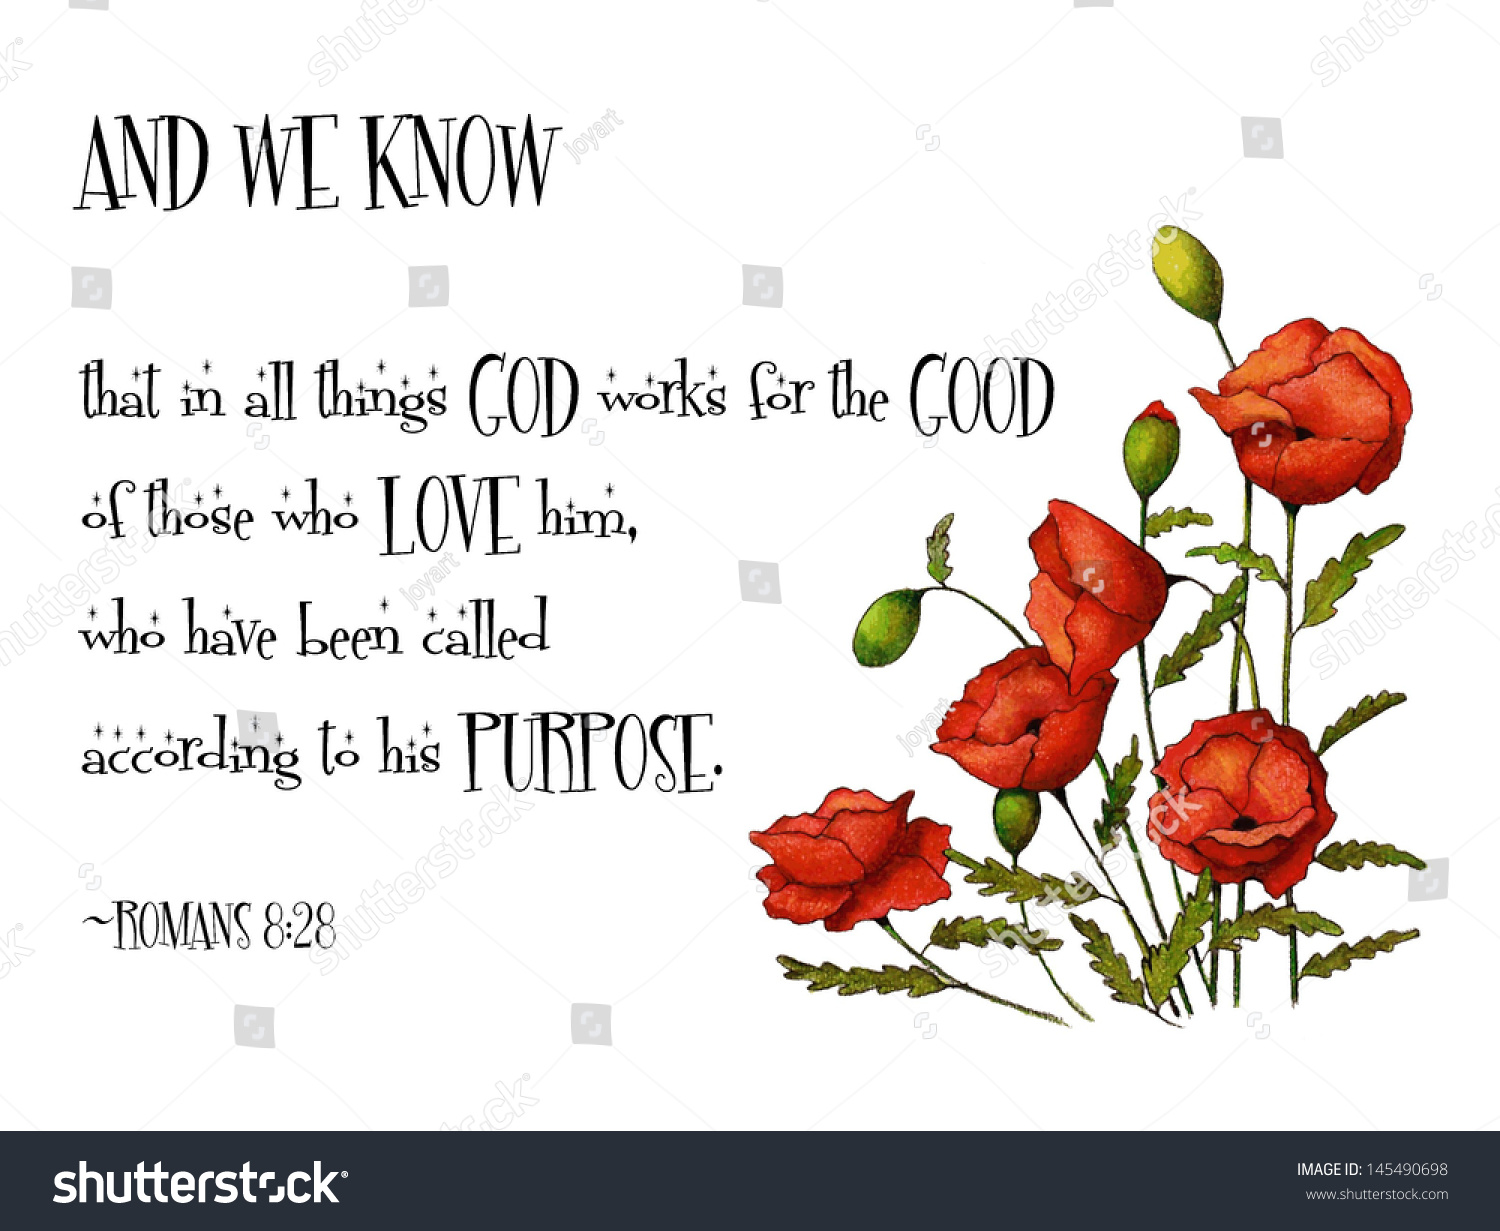 Image result for royalty free images of romans 8:28 -pinterest